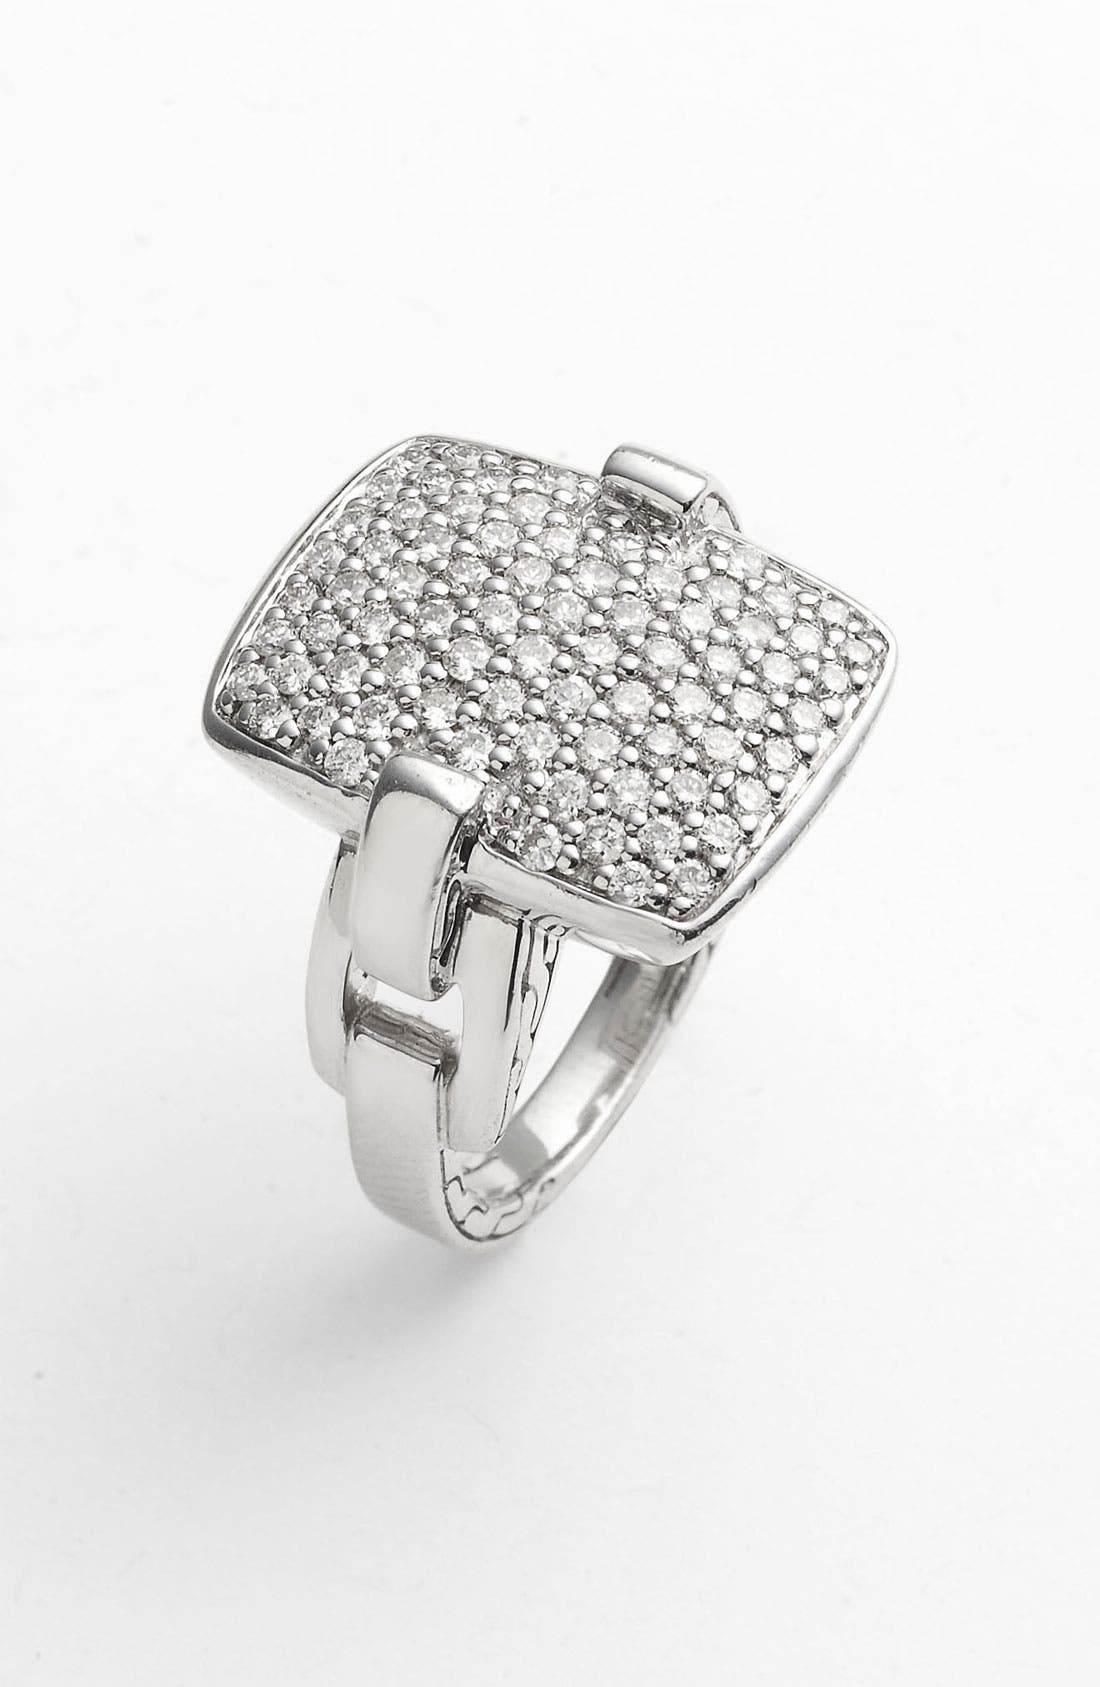 Alternate Image 1 Selected - John Hardy 'Classic Chain' Rectangular Diamond Pavé Ring